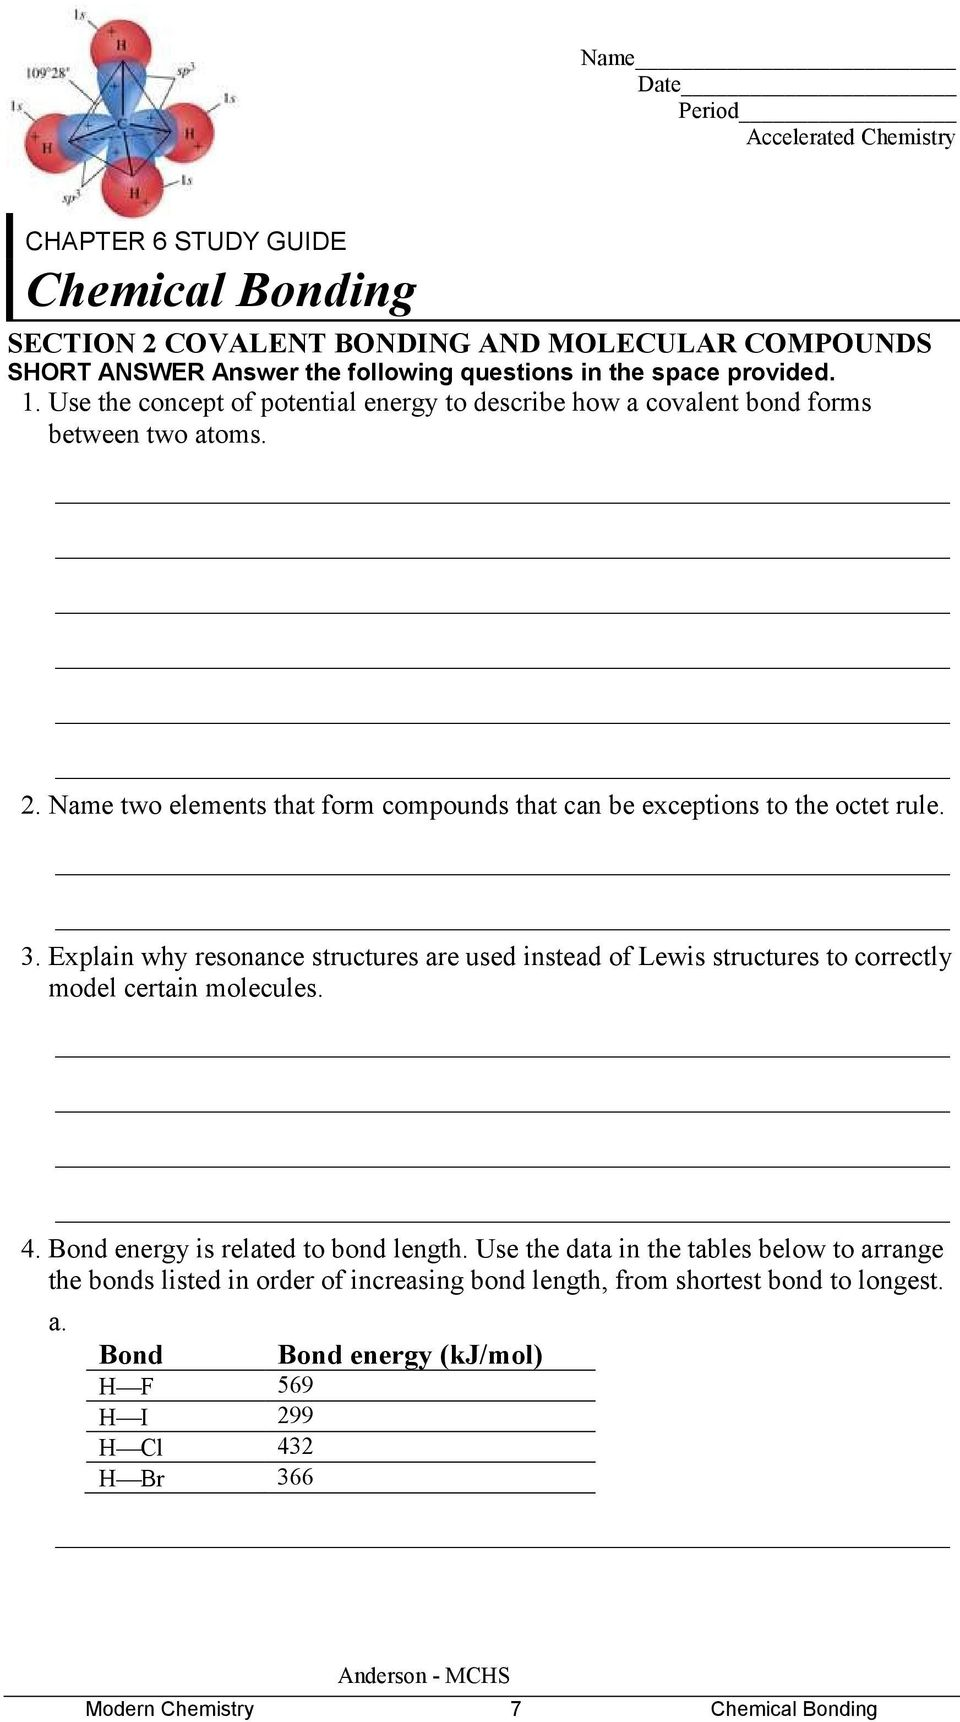 Chapter 6 Section 2 Chemical Bonding Worksheet Answers